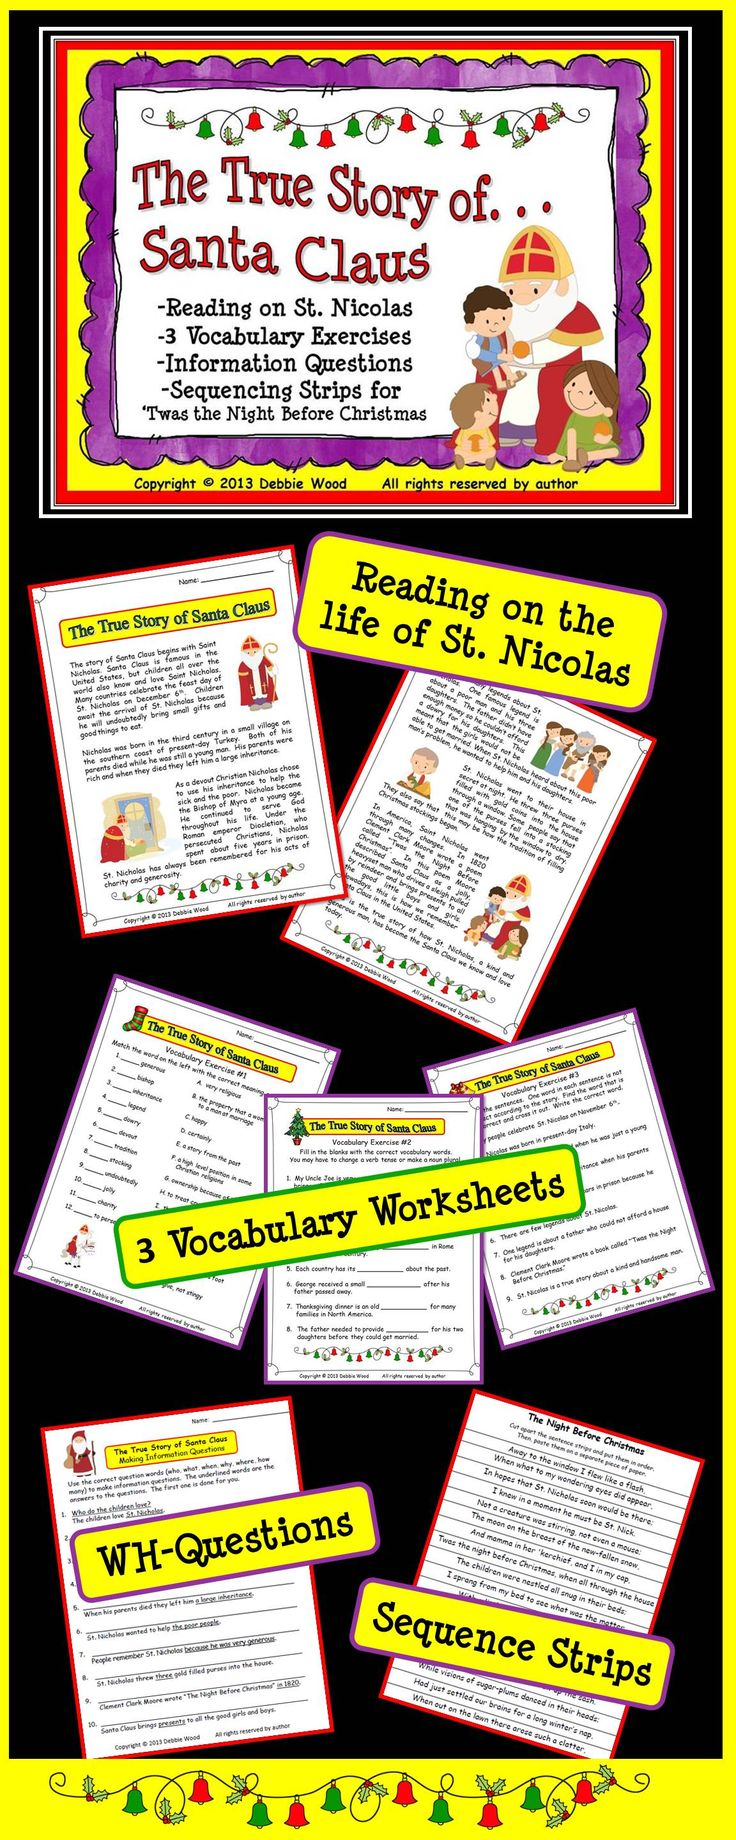 "The True Story of Santa Claus:  St. Nicolas Includes a 2 page reading on the life of St. Nicolas, 3 Vocabulary worksheets, WH-Questions and Sequence Strips on the poem ""Twas the Night Before Christmas""."